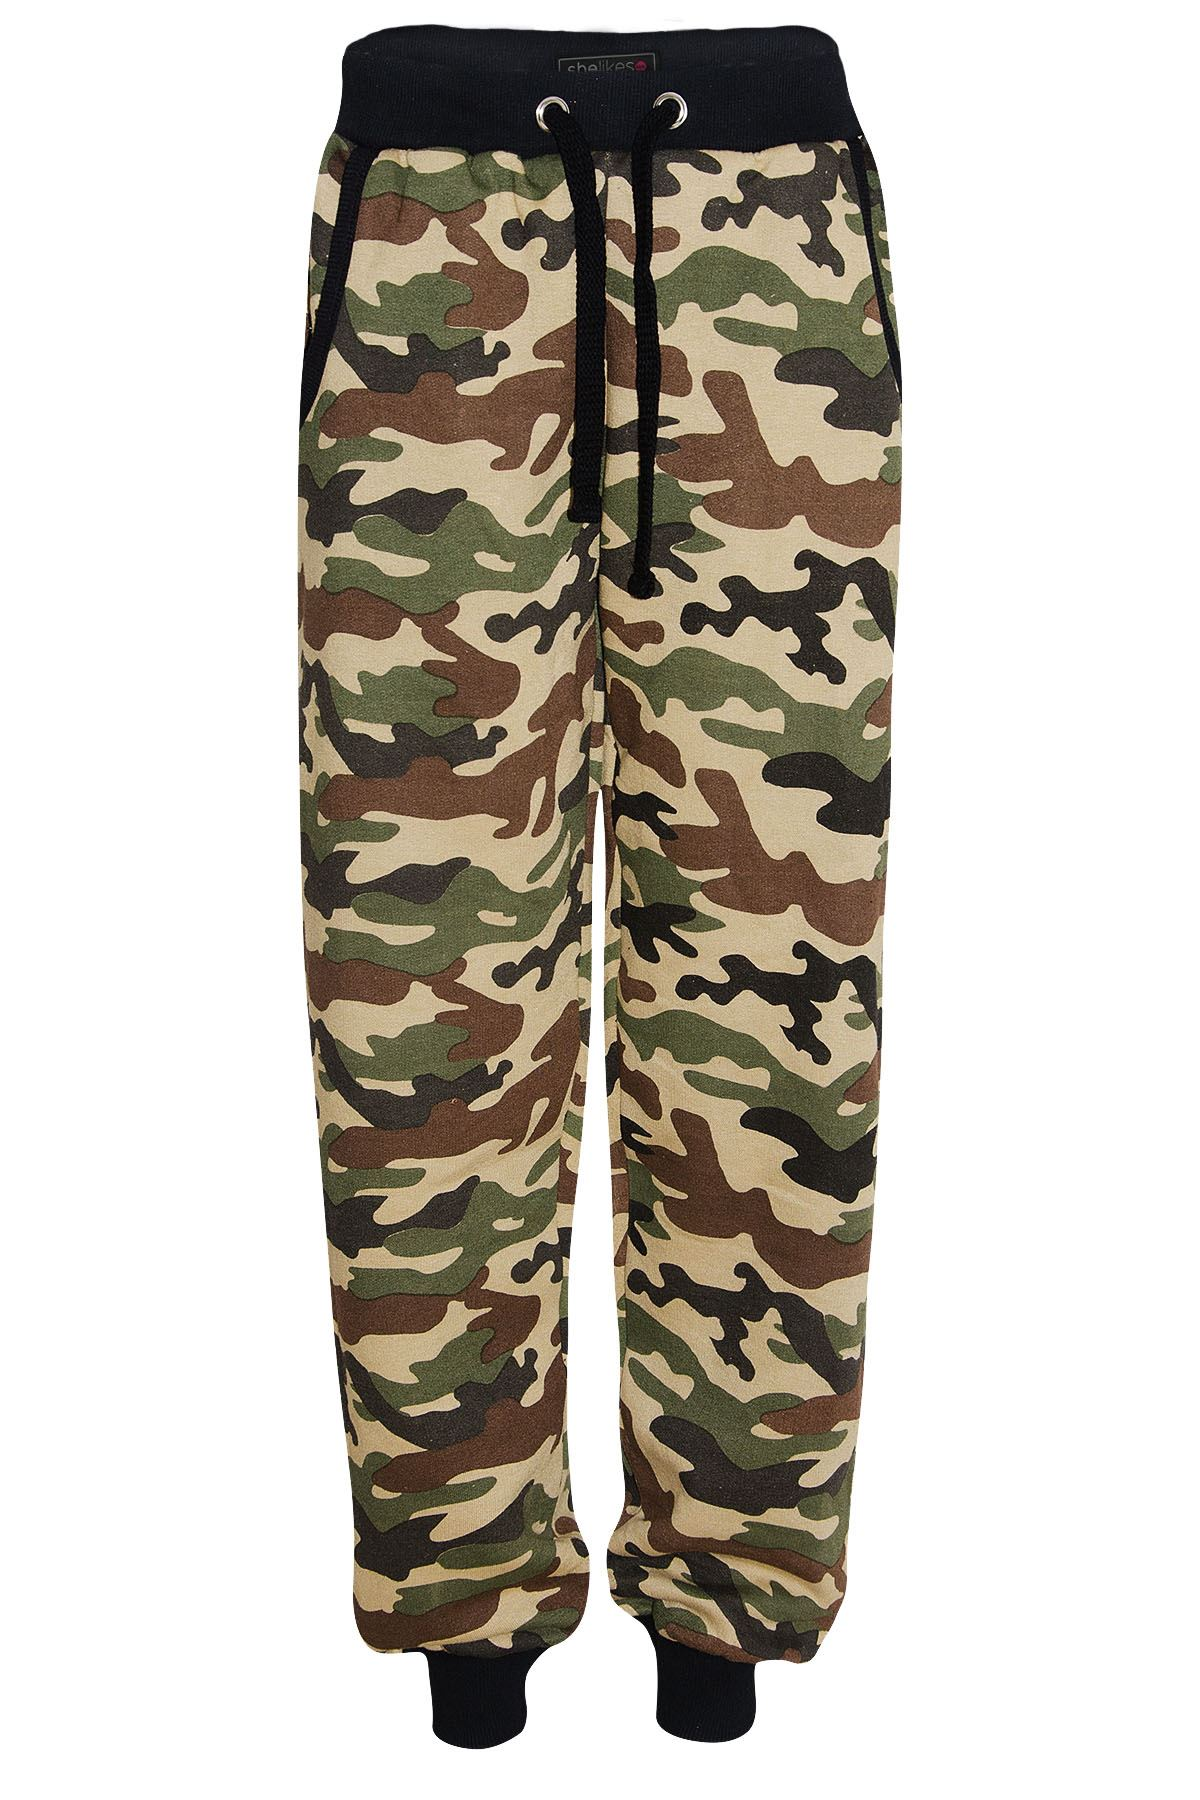 Awesome ShipingHip Hop Pants Women Large Pocket Casual Pants Camouflage Pants